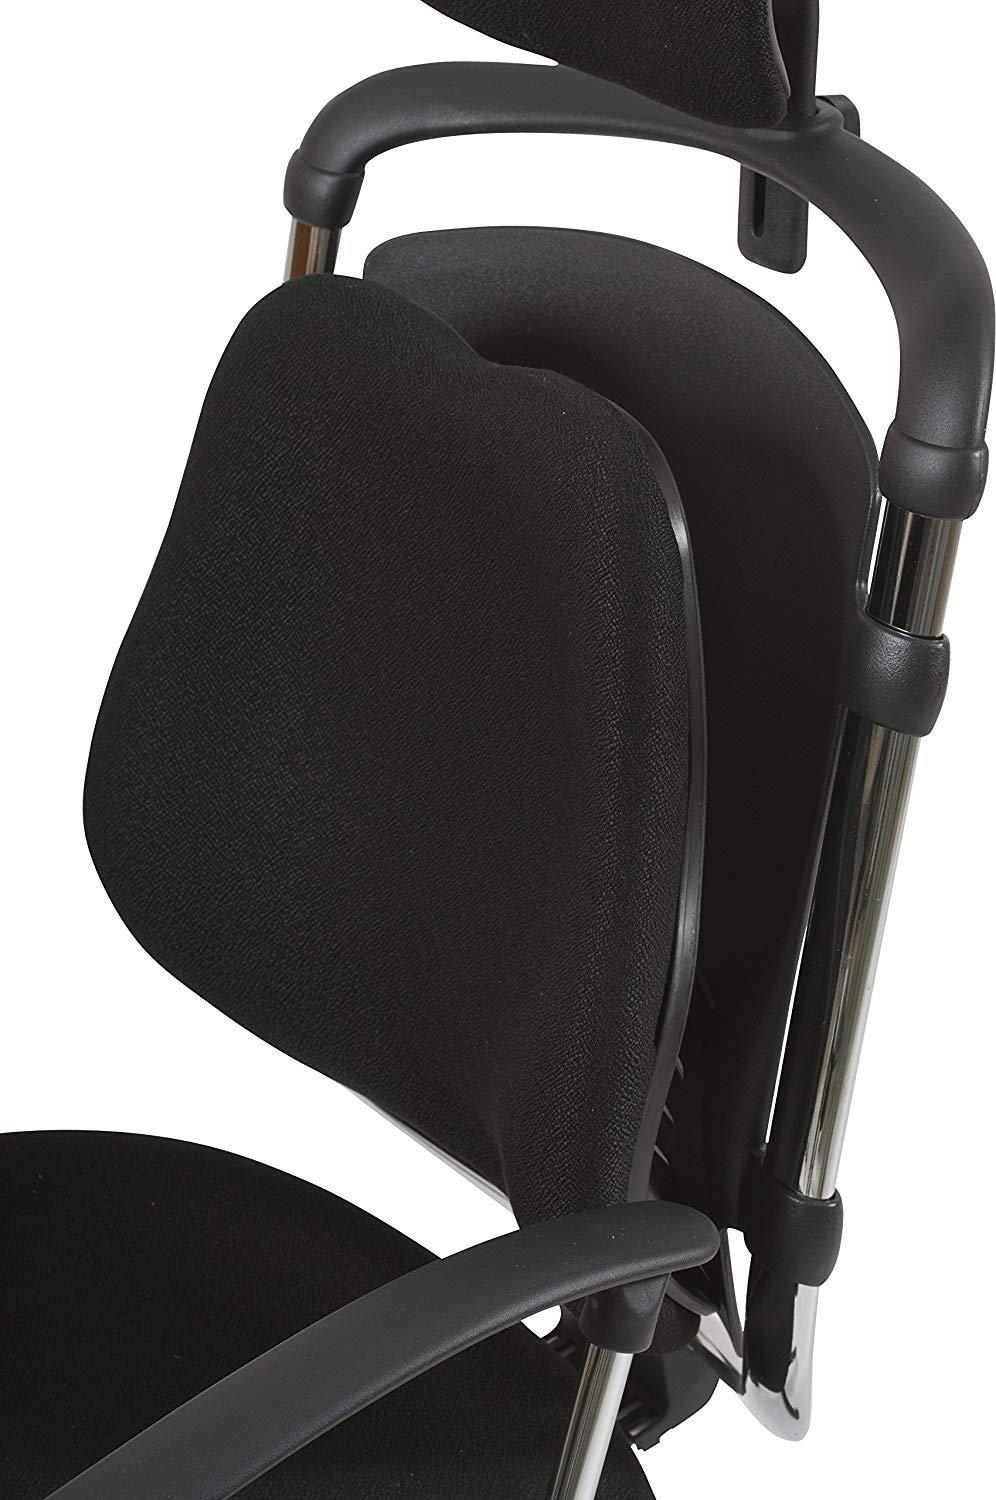 balt posture perfect chair modern leather dining chairs toronto 34571 ergonomic office 44 48 h x 26 w 21 d product details the